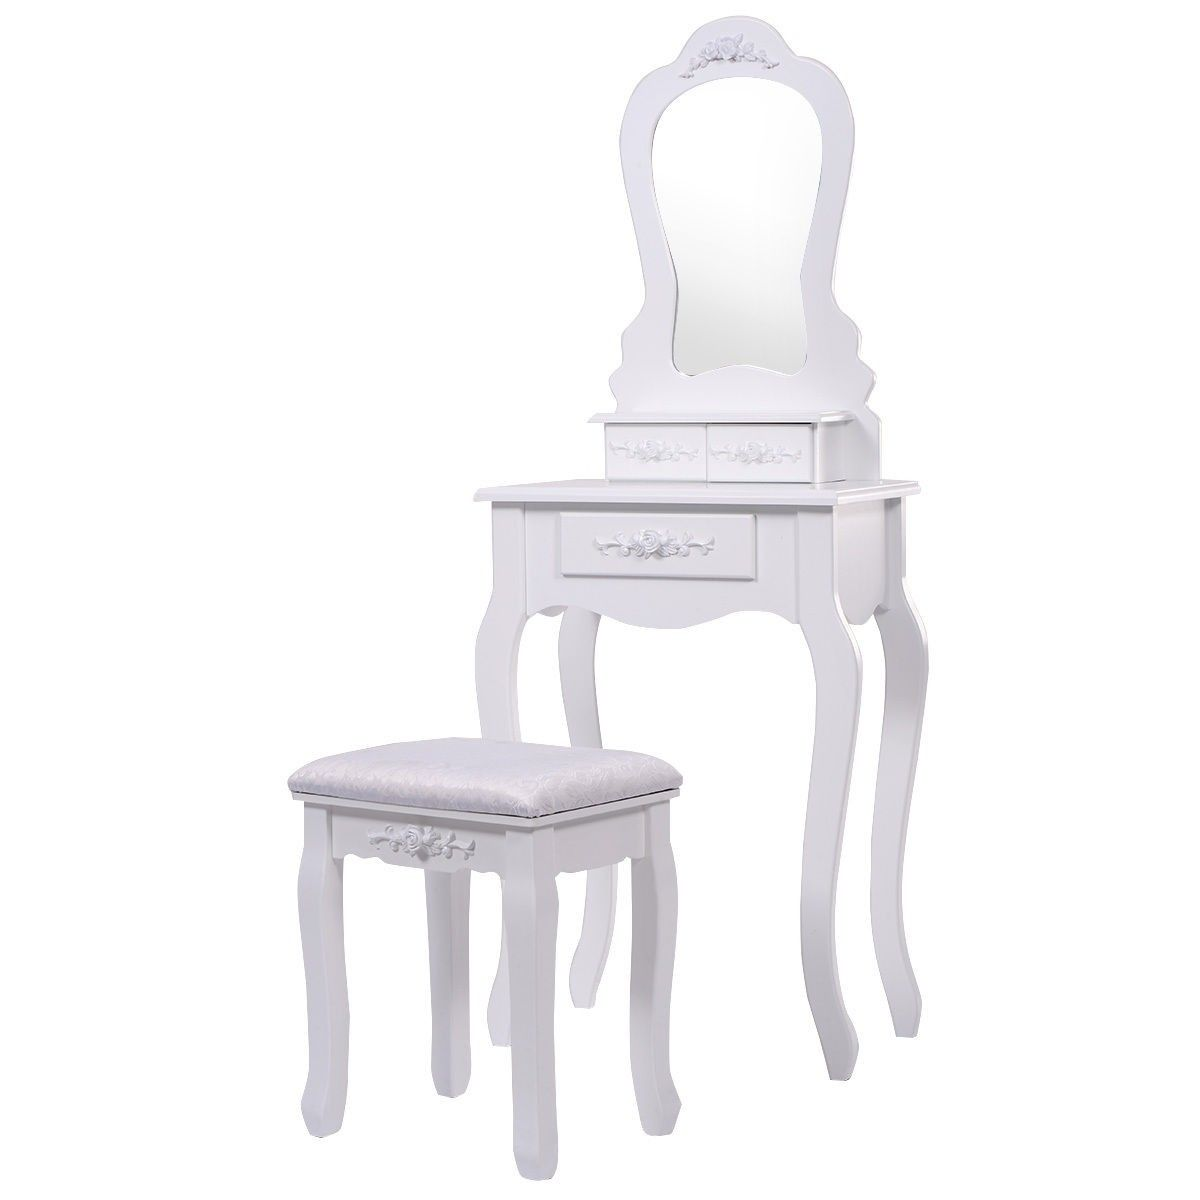 Pleasant Compact Vanity Makeup Dressing Table Stool Set In 2019 Squirreltailoven Fun Painted Chair Ideas Images Squirreltailovenorg